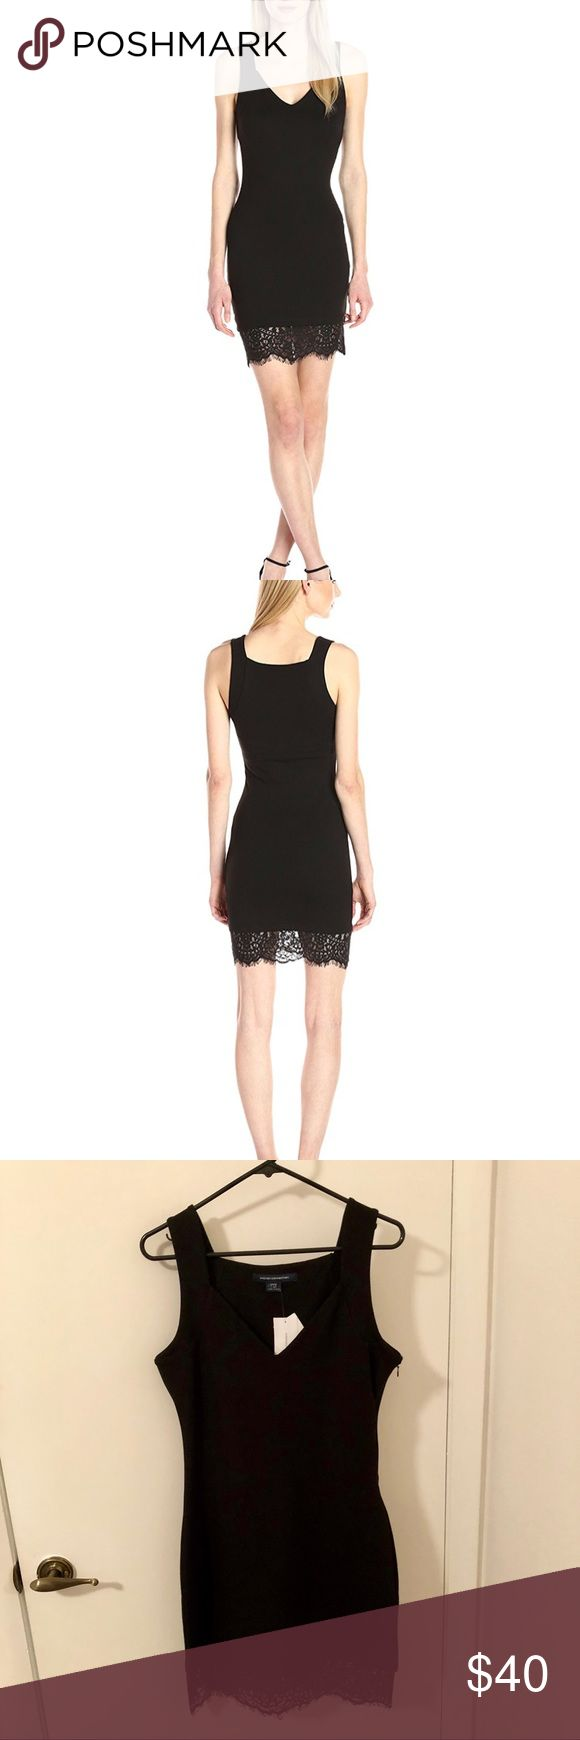 🖤 NWT French Connection Dress 🖤 Hot! NWT French Connection Little Black Dress! Perfect condition, stretchy material, lace bottom, side zipper. A must have fashion staple!!! French Connection Dresses